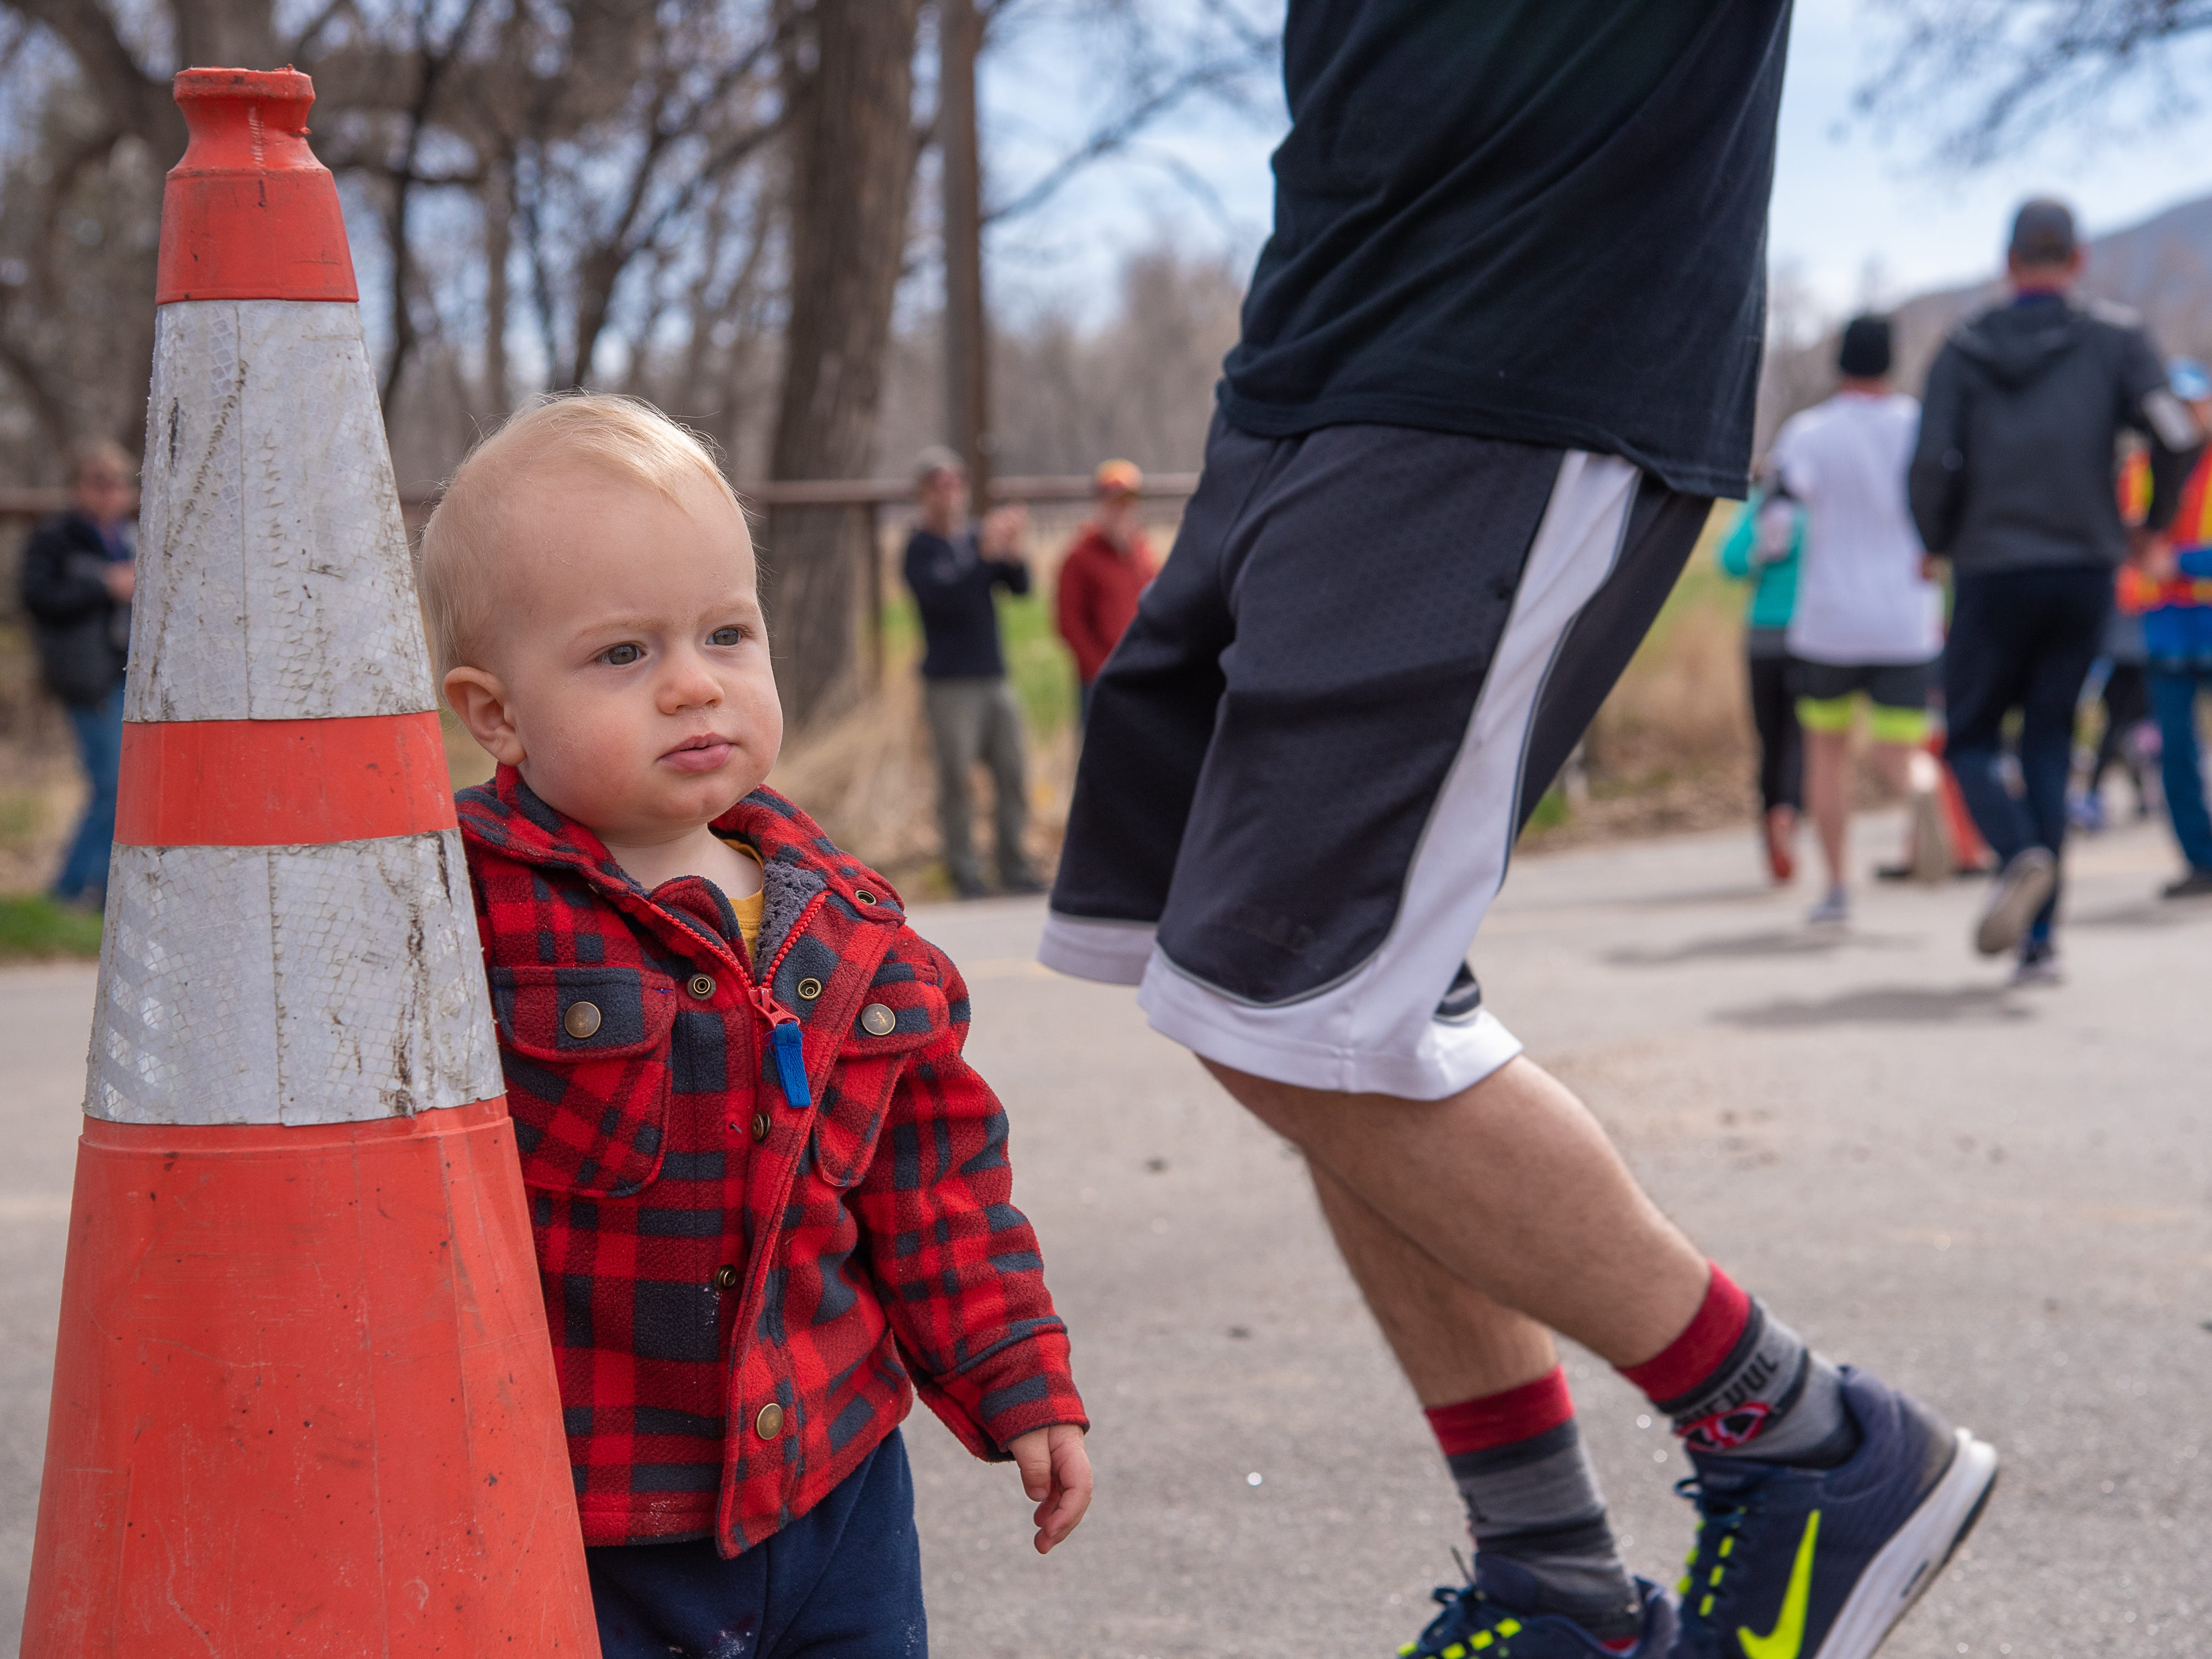 Jude Veliquette, 1,  watches race participants near the corner of Bingham Hill Road during the Horsetooth Half Marathon on Sunday, April 14, 2019, in Fort Collins, Colo.